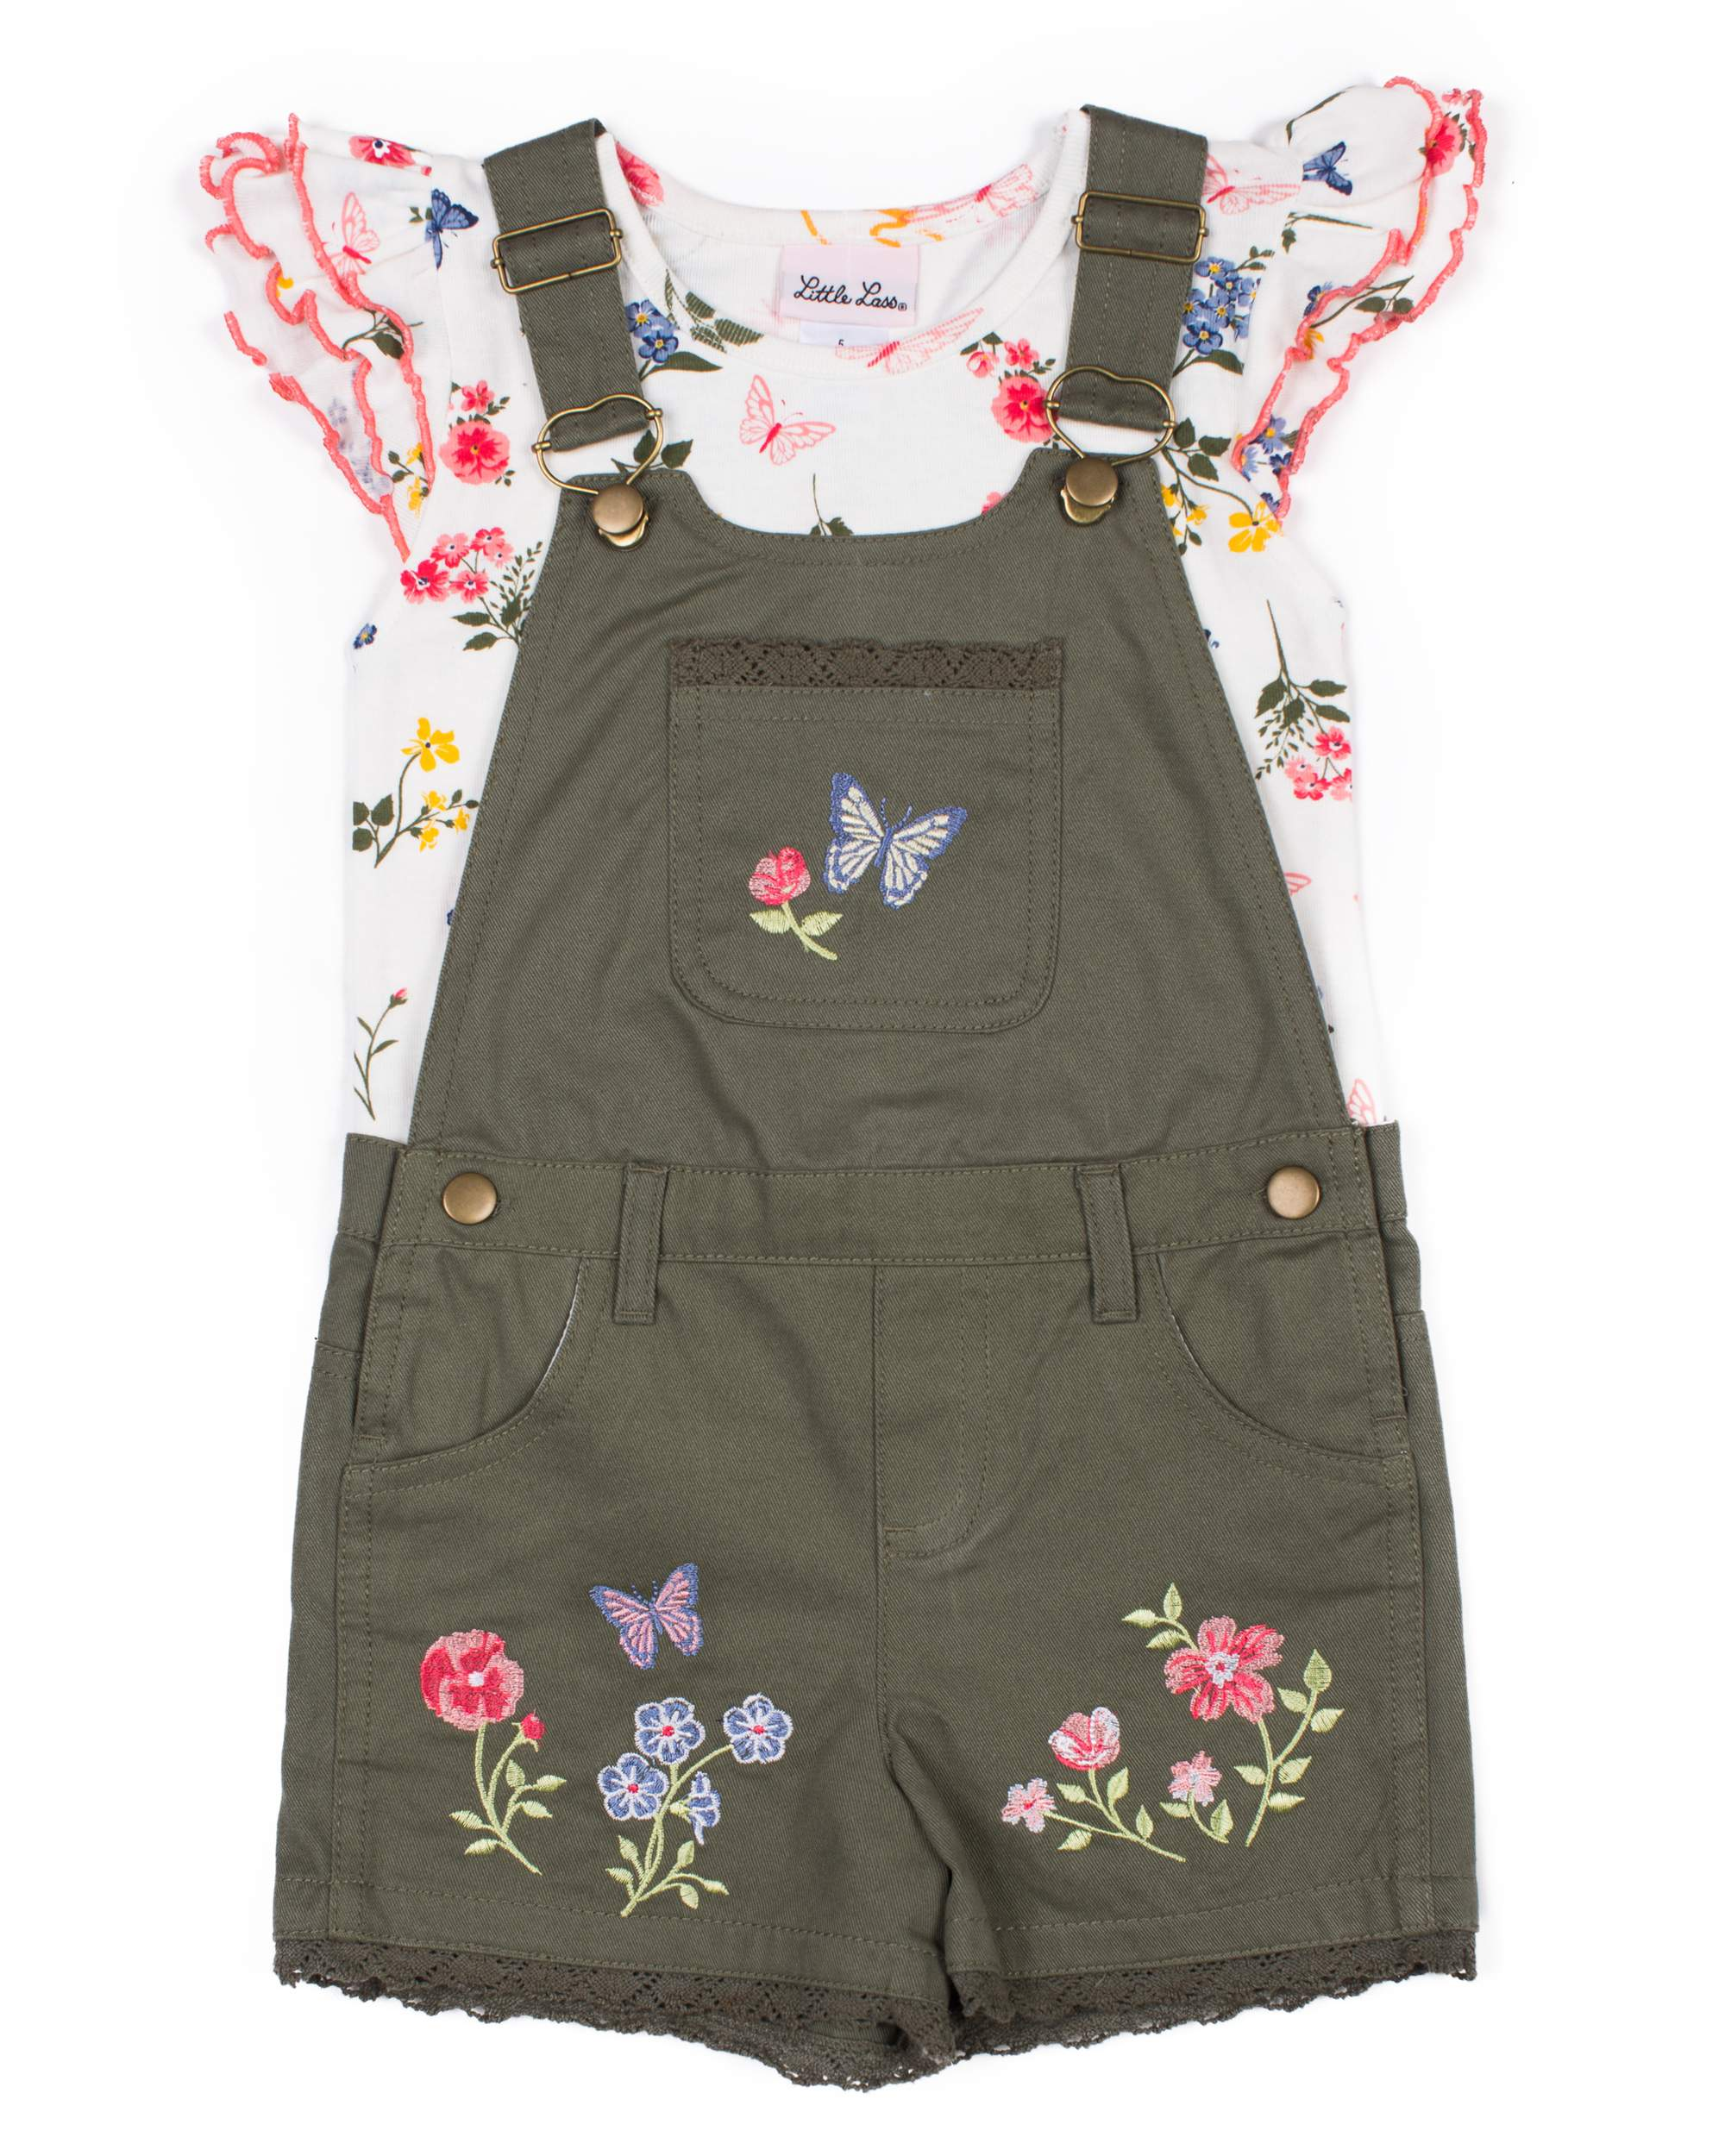 Floral Embroidered Shortall and Ruffle Tee, 2-Piece Outfit Set (Little Girls)